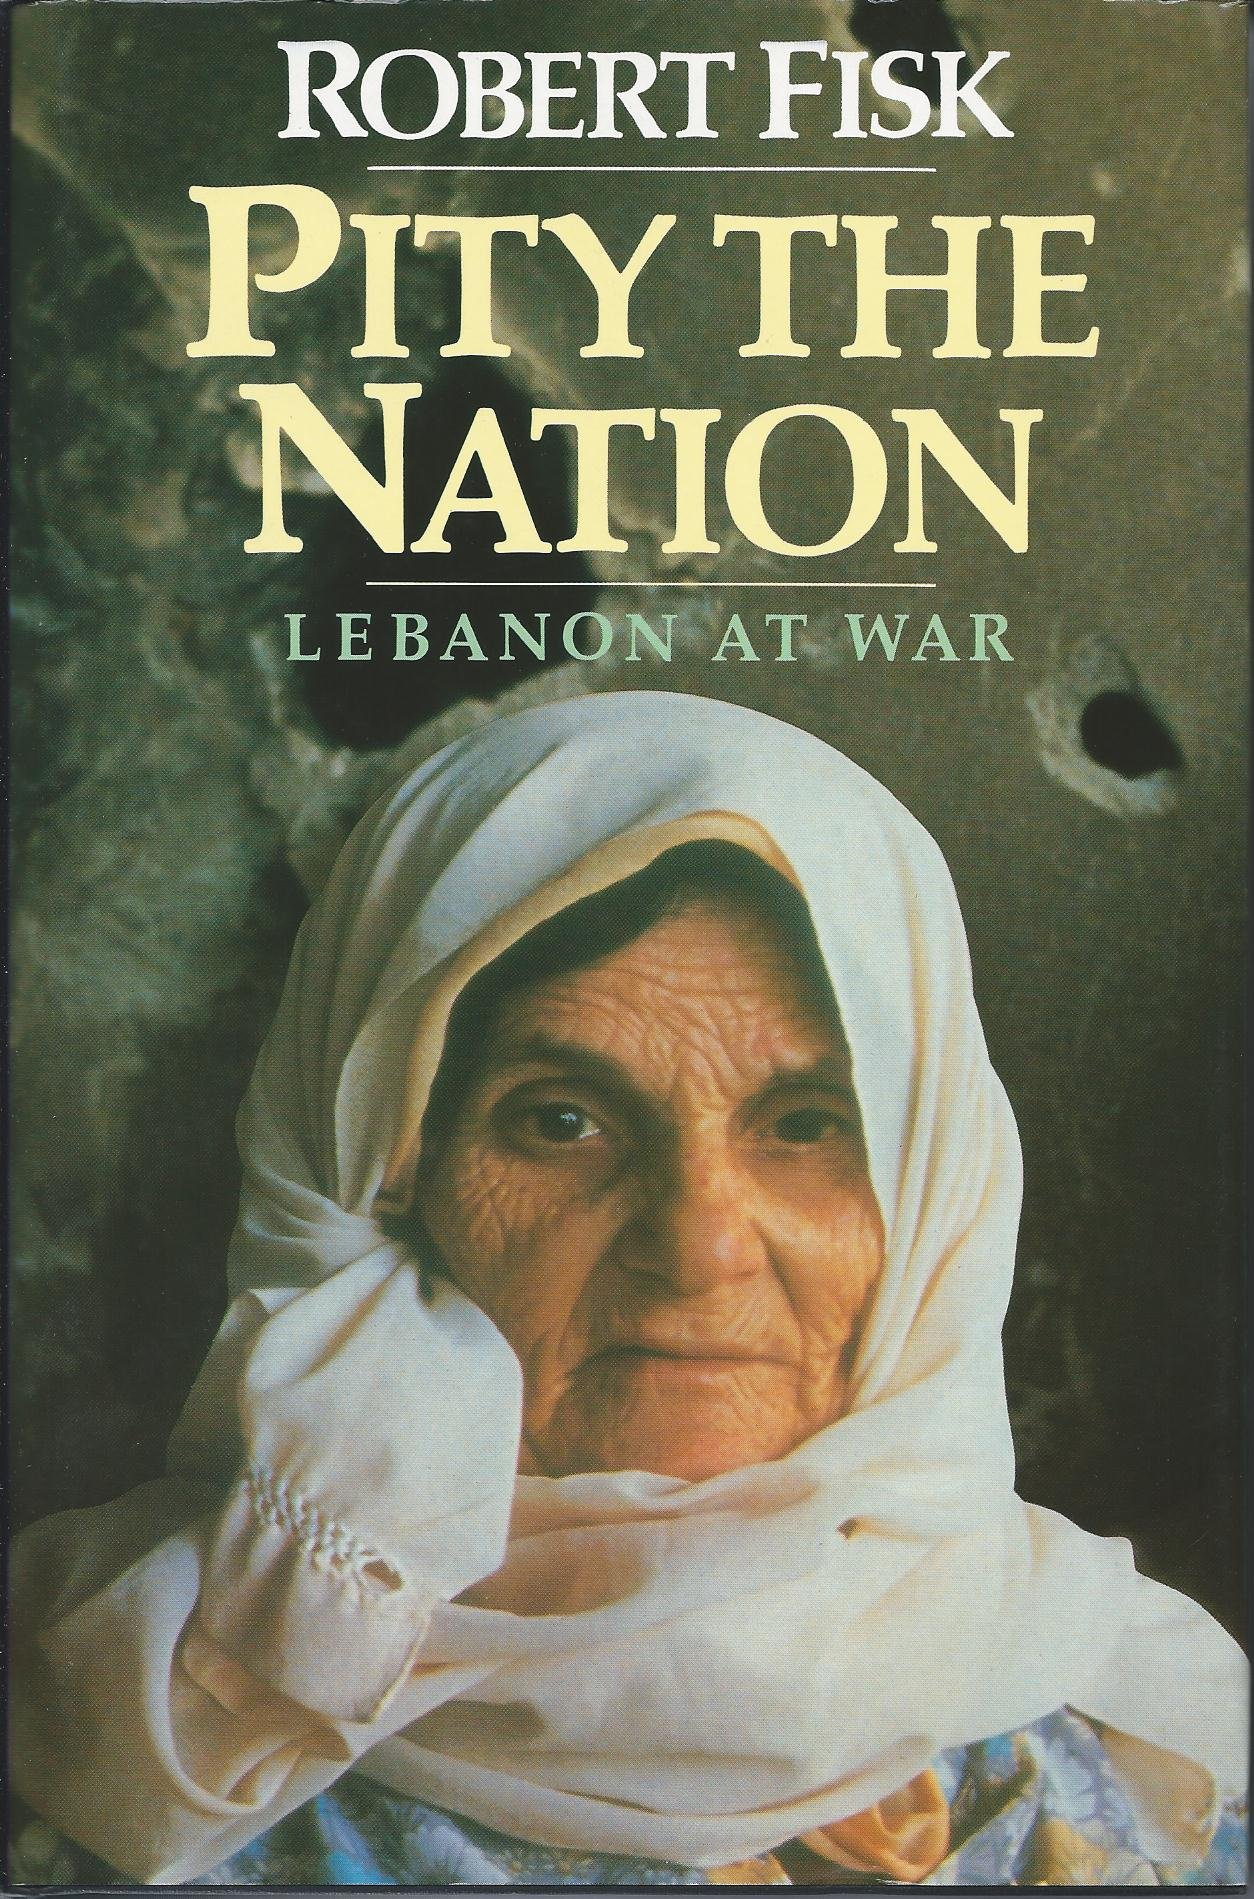 Pity the Nation: Lebanon at War: Amazon.de: Robert Fisk: Fremdsprachige  Bücher